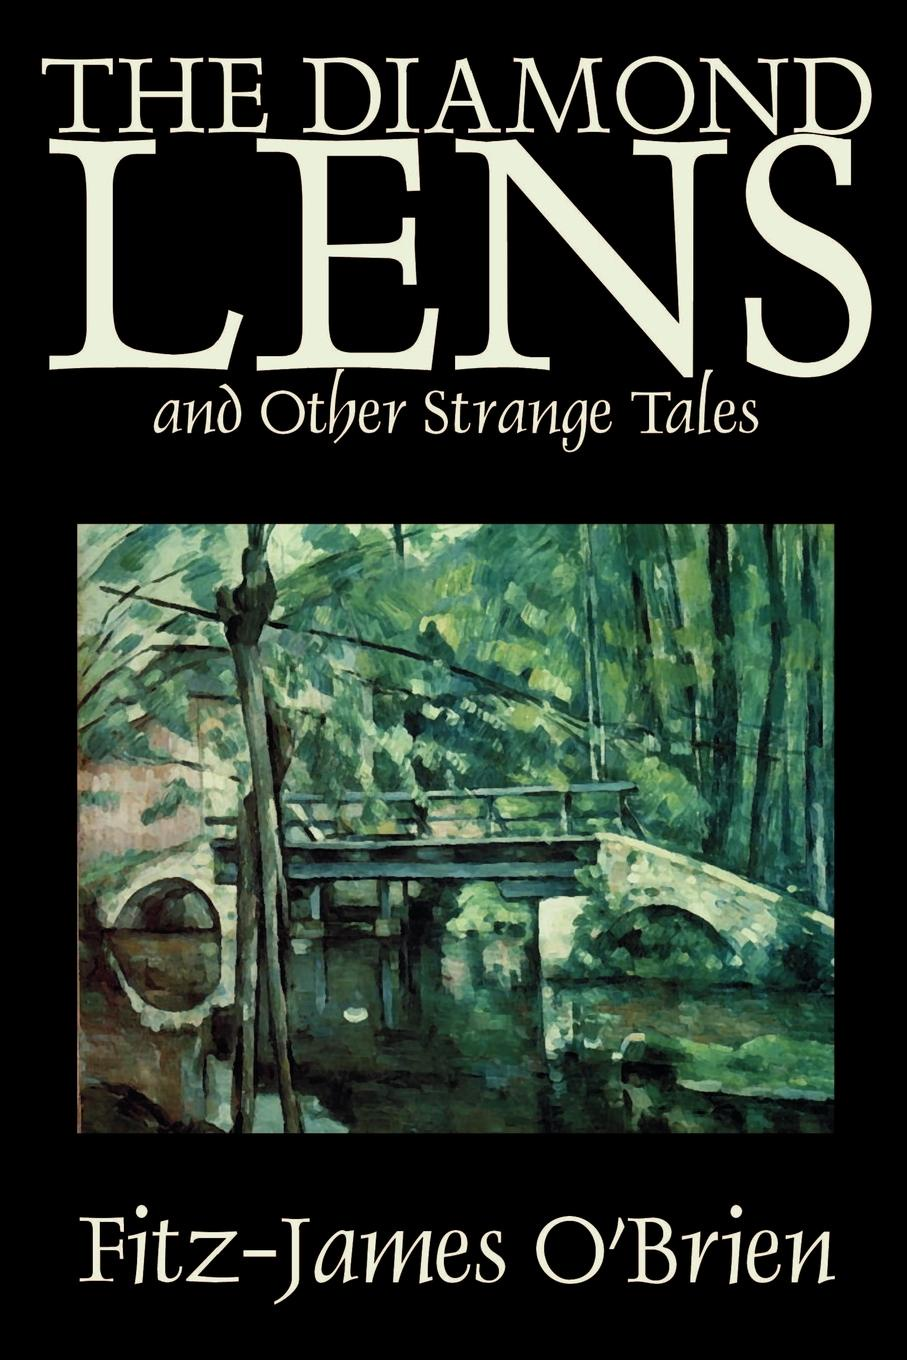 Fitz-James O'Brien The Diamond Lens and Other Strange Tales by Fitz James O'Brien, Fiction, Fantasy, Short Stories anne o brien marriage under siege